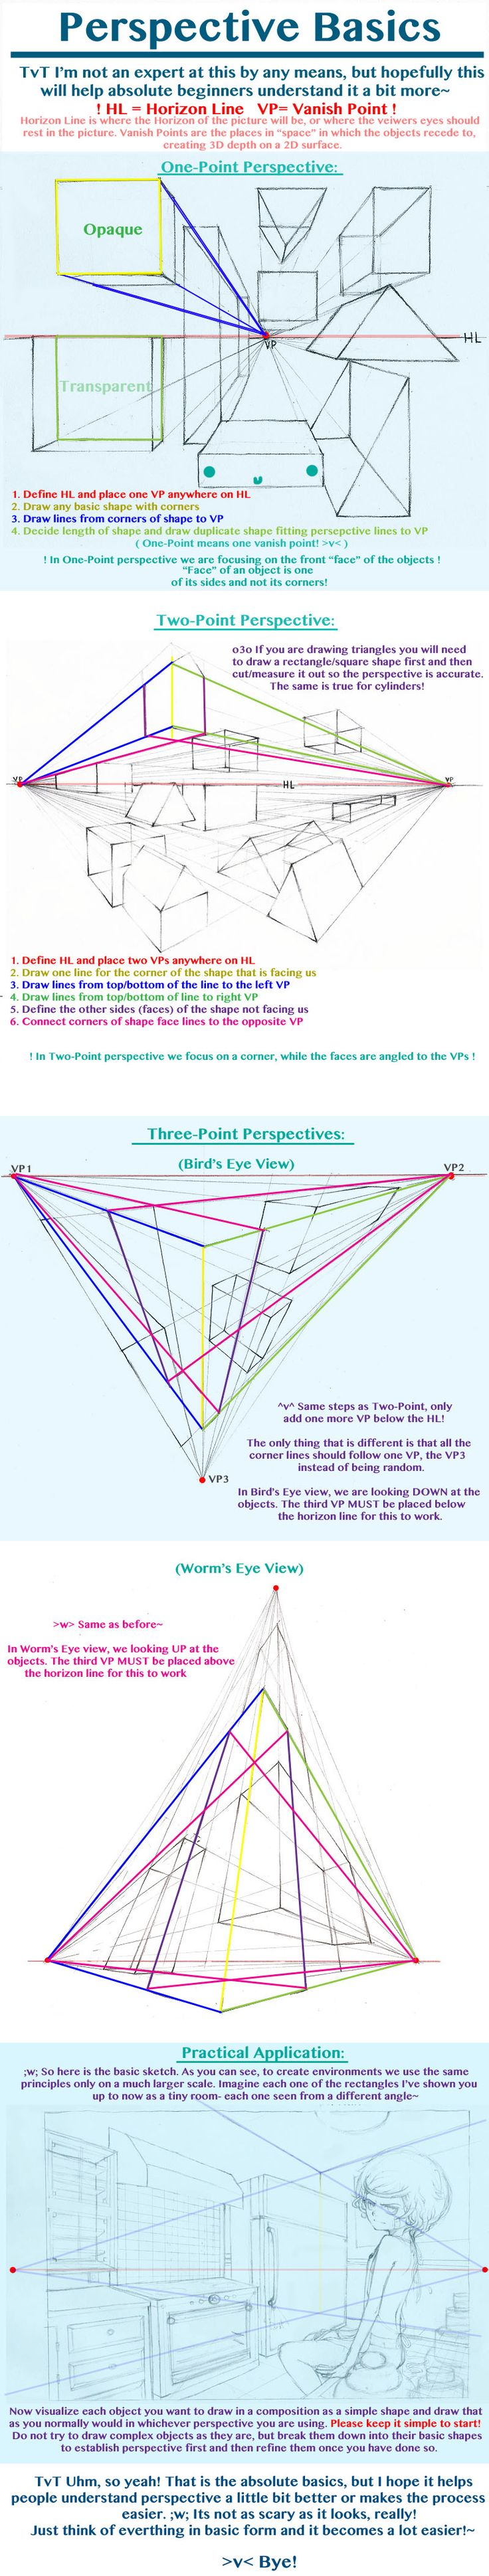 Perspective Basics by *BlueRoseArkelle on deviantART join us http://pinterest.com/koztar/